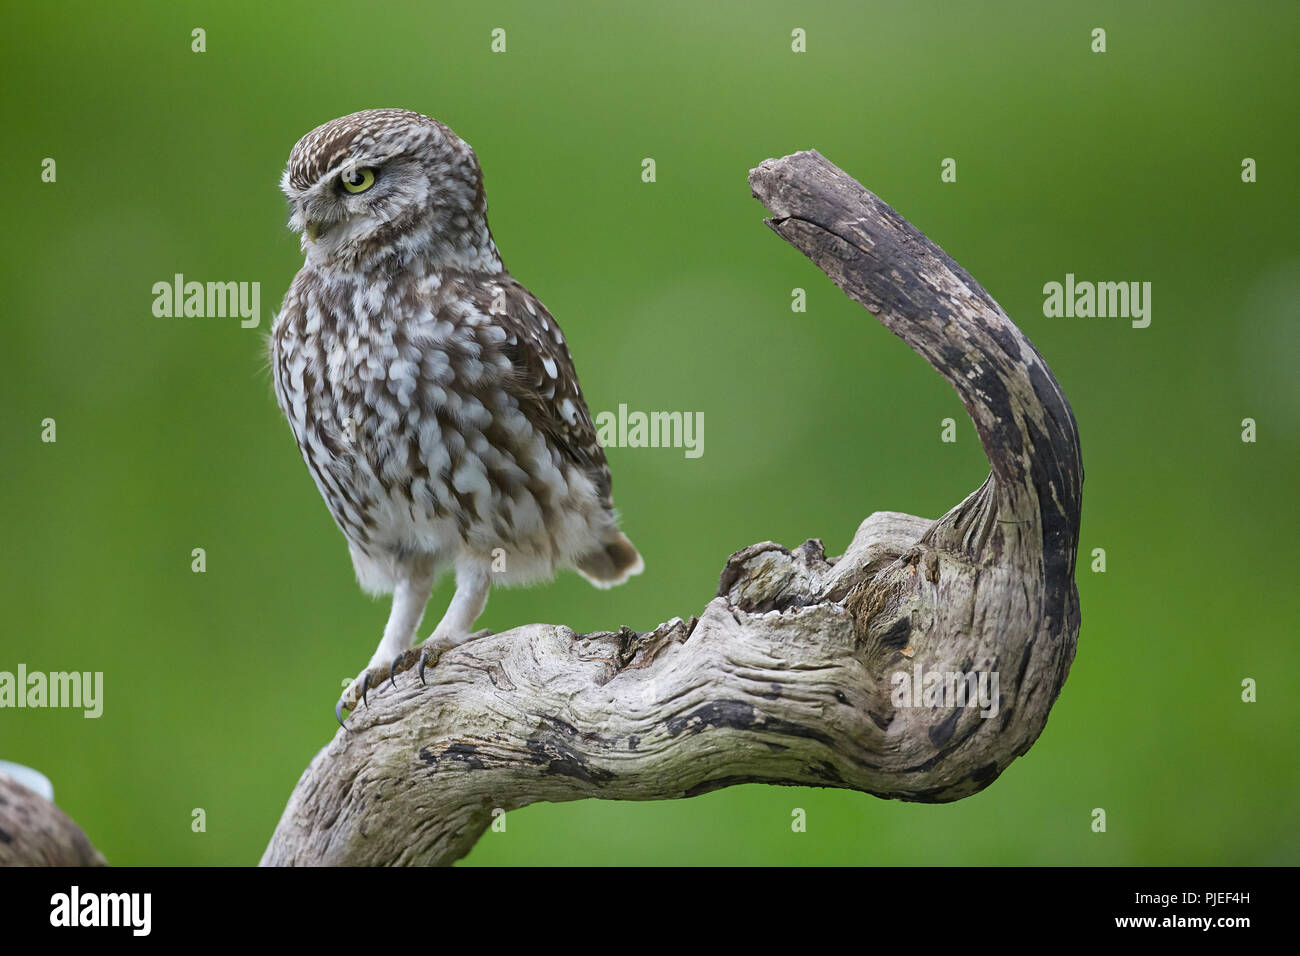 Little Owl, Athene noctua East Yorkshire, UK, sat on a perch, introduced to Britain during the 19th century. - Stock Image